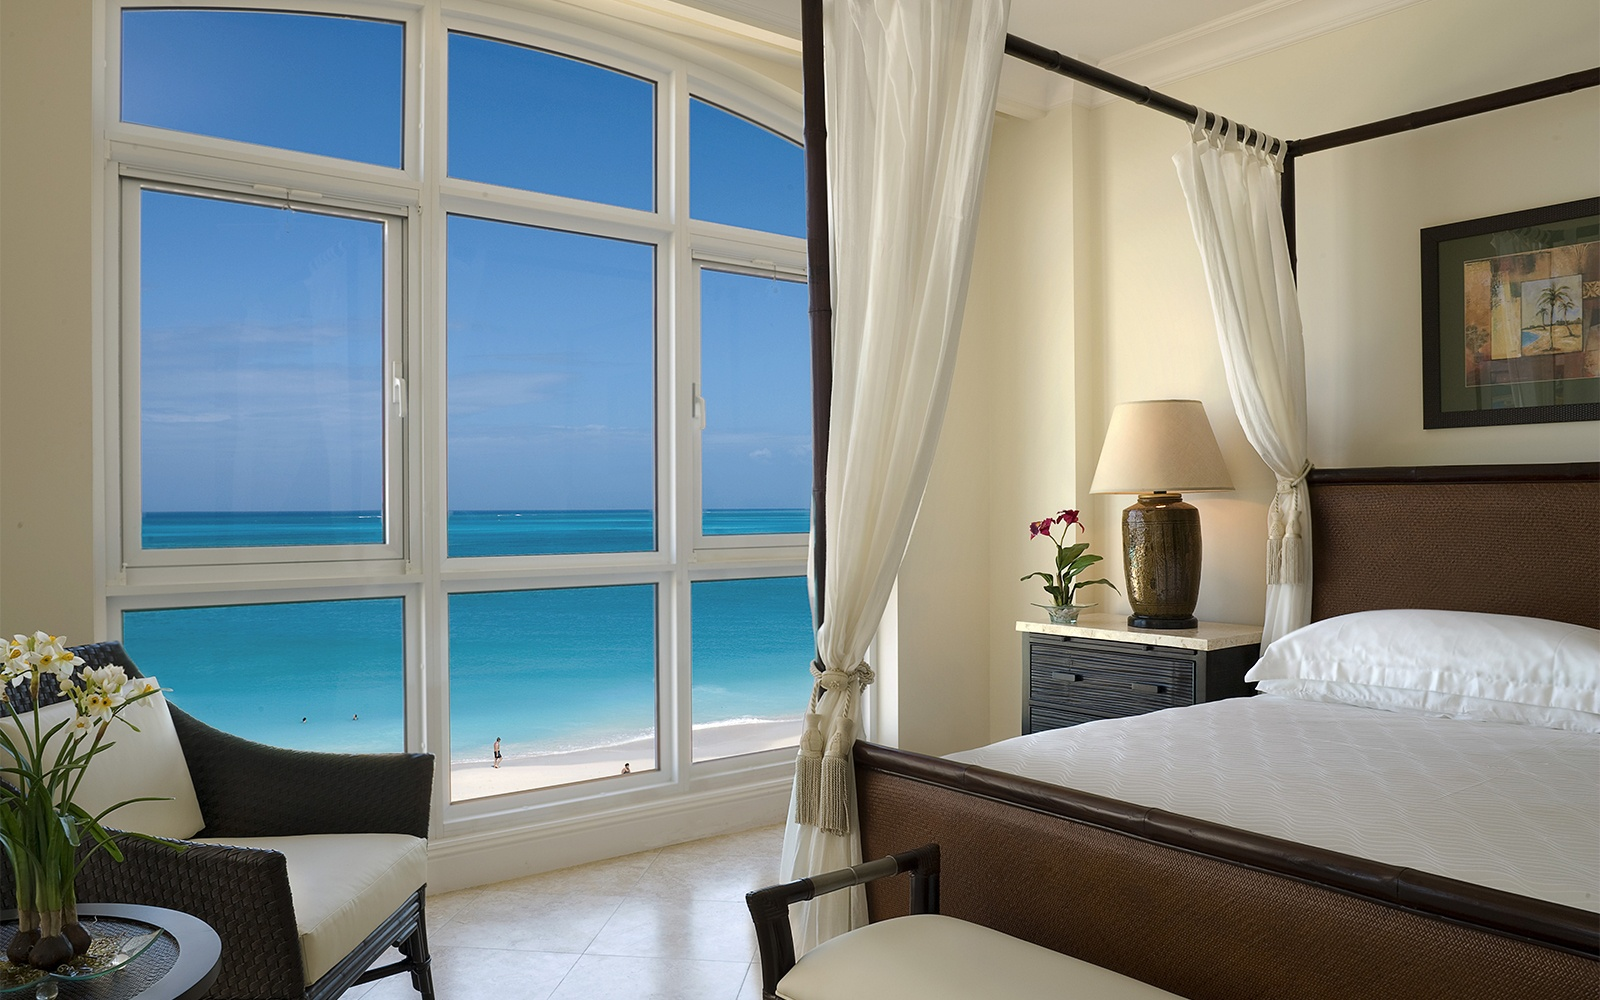 No. 17: Seven Stars Resort, Turks and Caicos